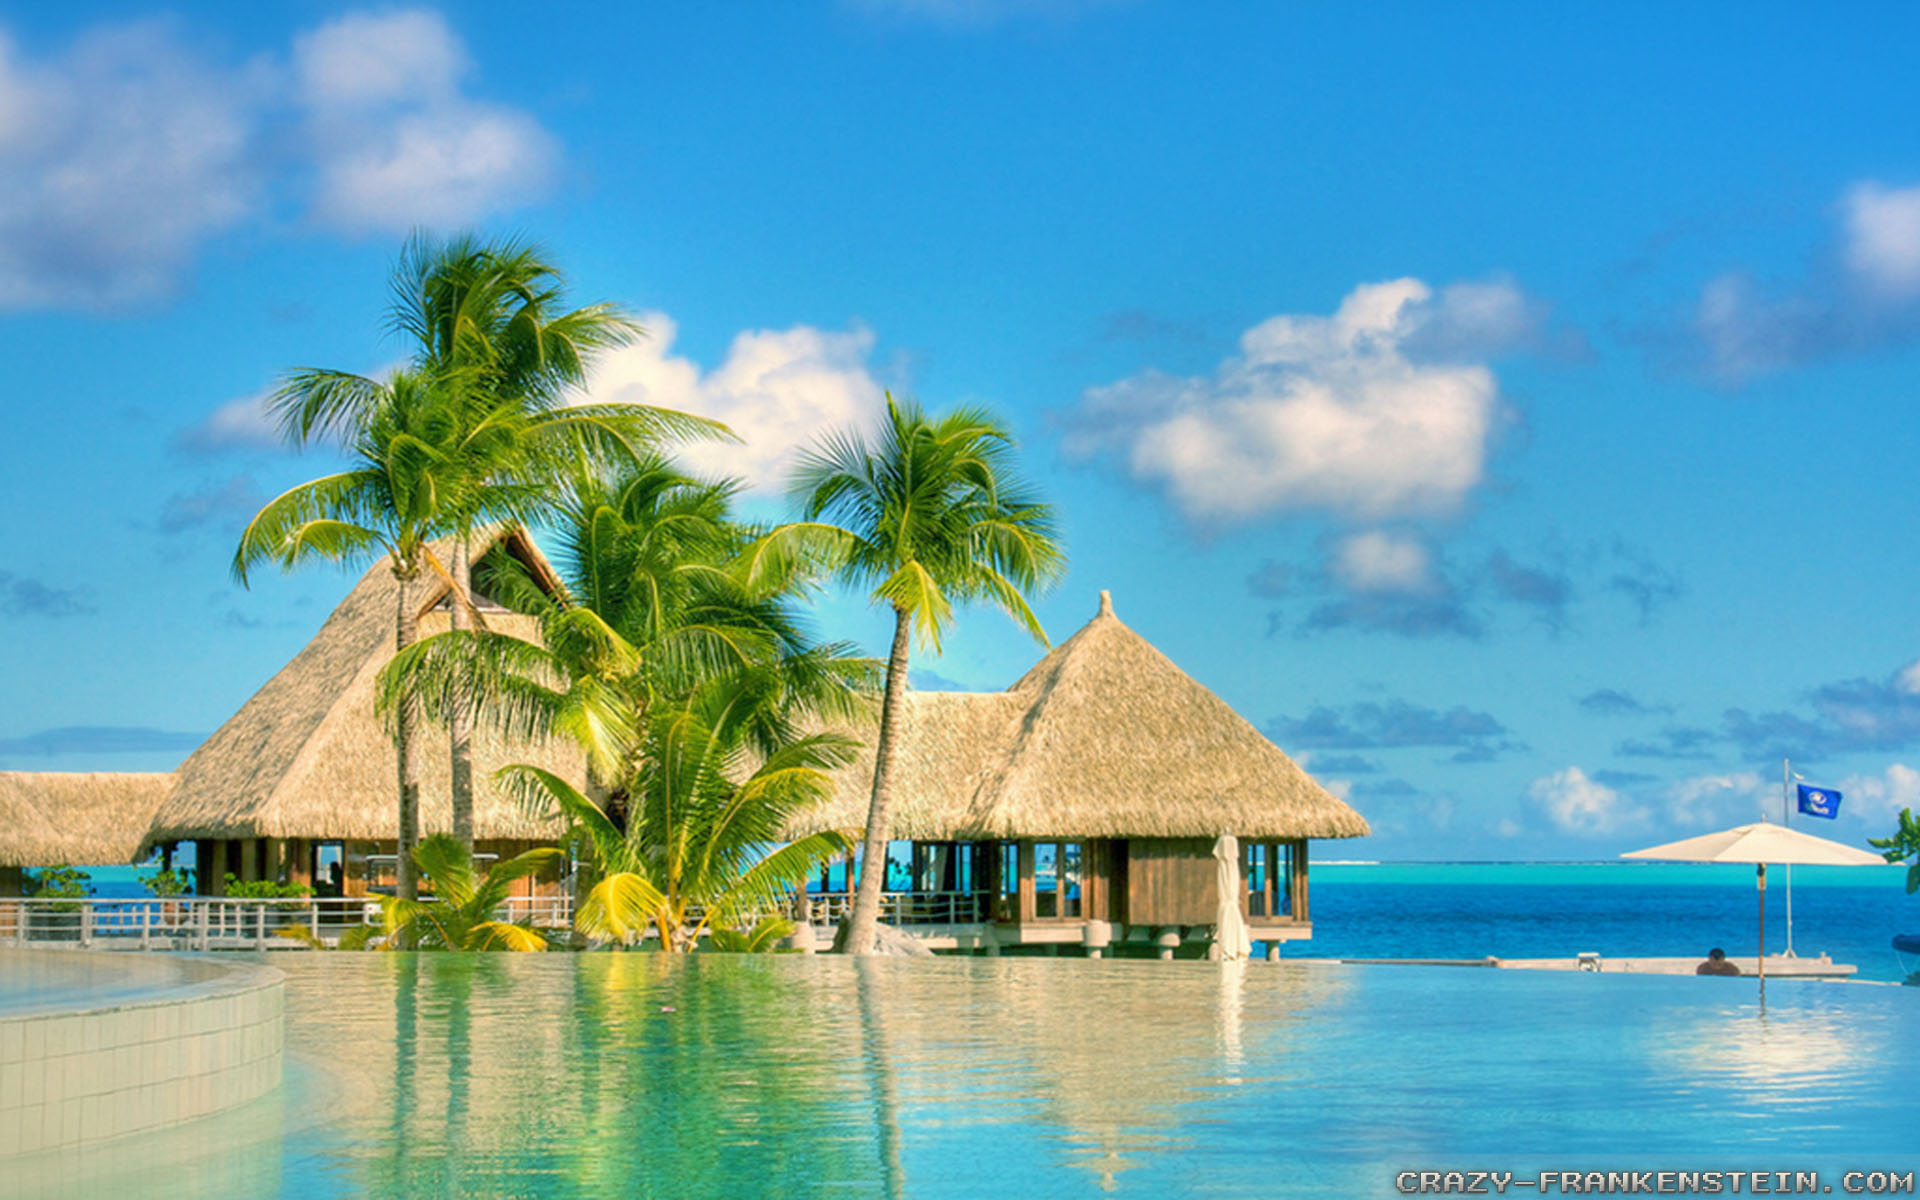 Download high resolution summer wallpaper gallery - Large screen wallpapers free ...